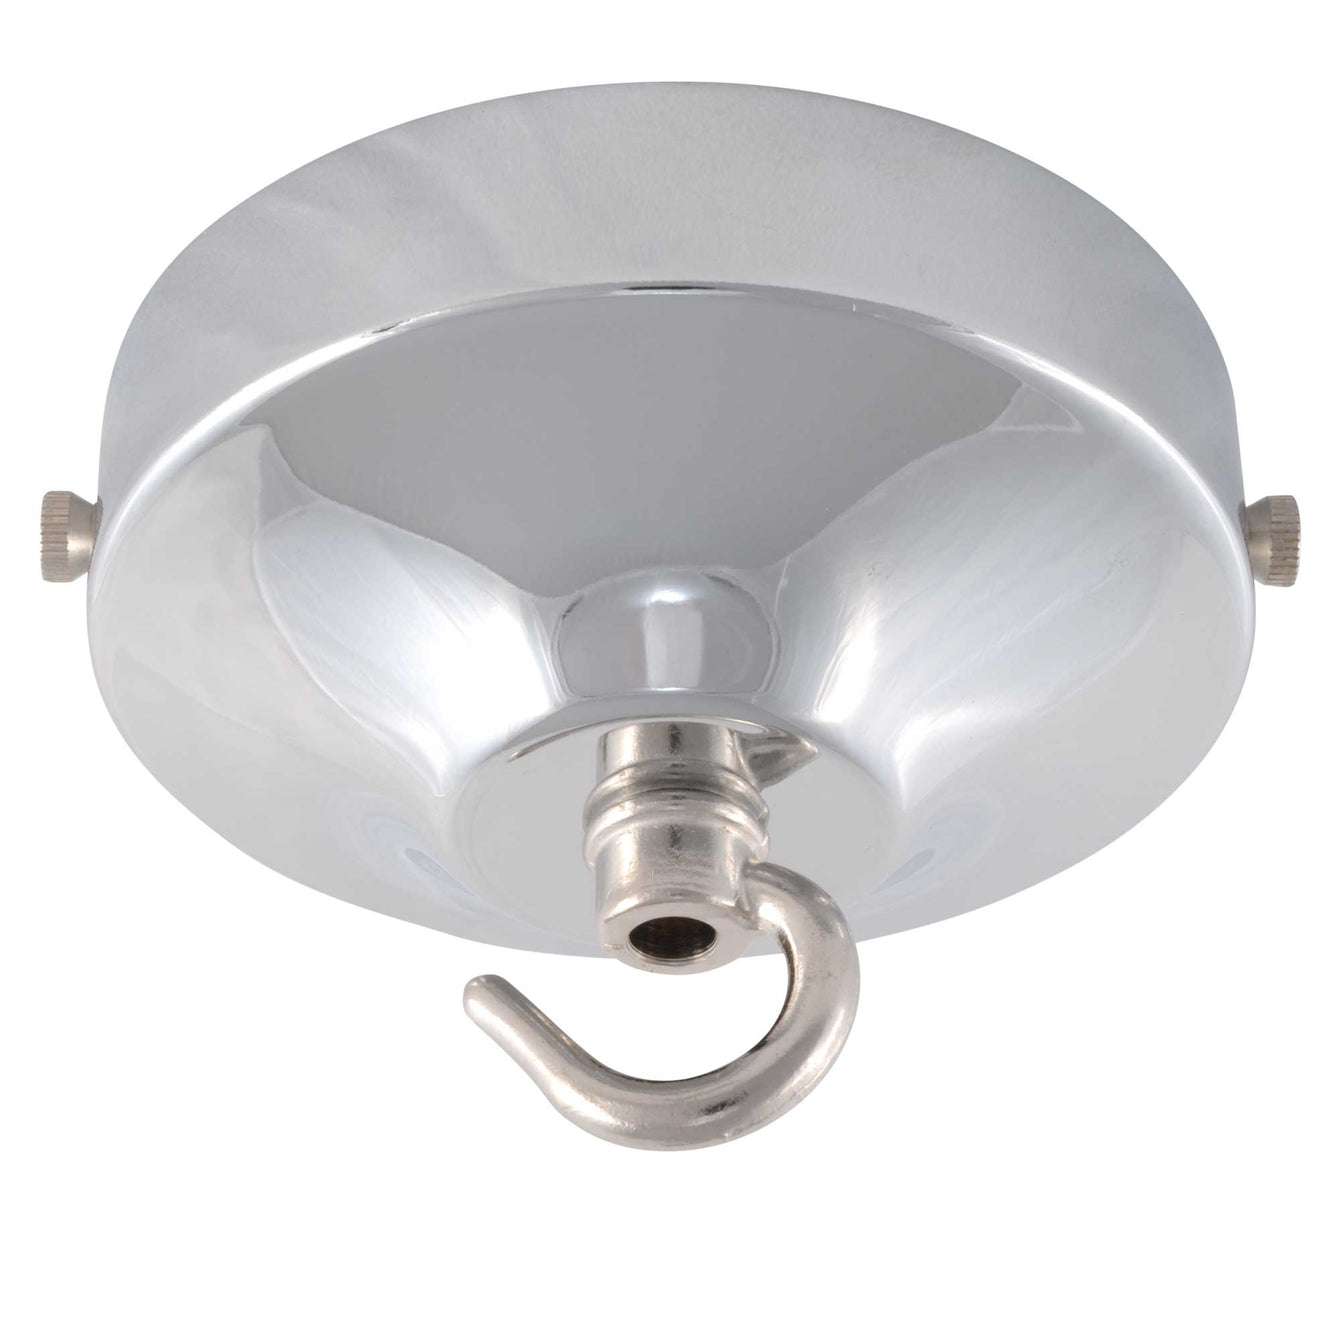 ElekTek 100mm Diameter Convex Ceiling Rose with Strap Bracket and Hook Metallic and Powder Coated Finishes Willow Green